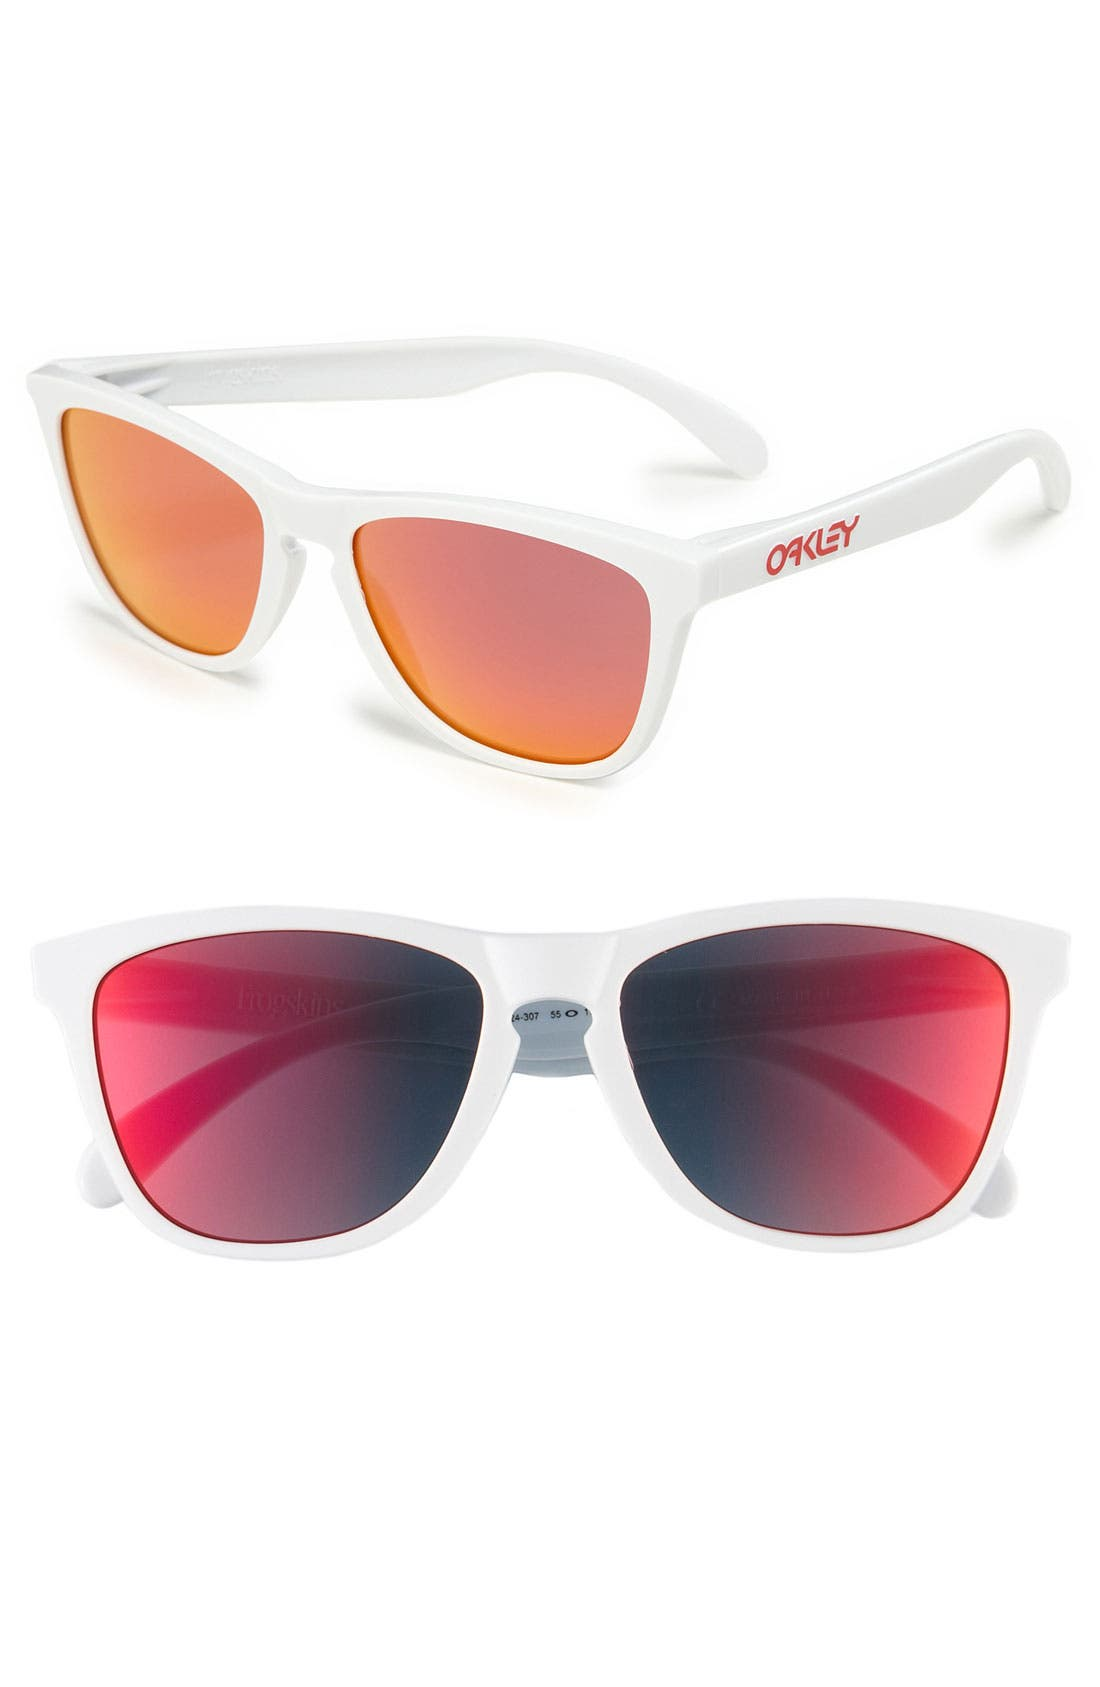 Alternate Image 1 Selected - Oakley 'Frogskins®' 55mm Sunglasses